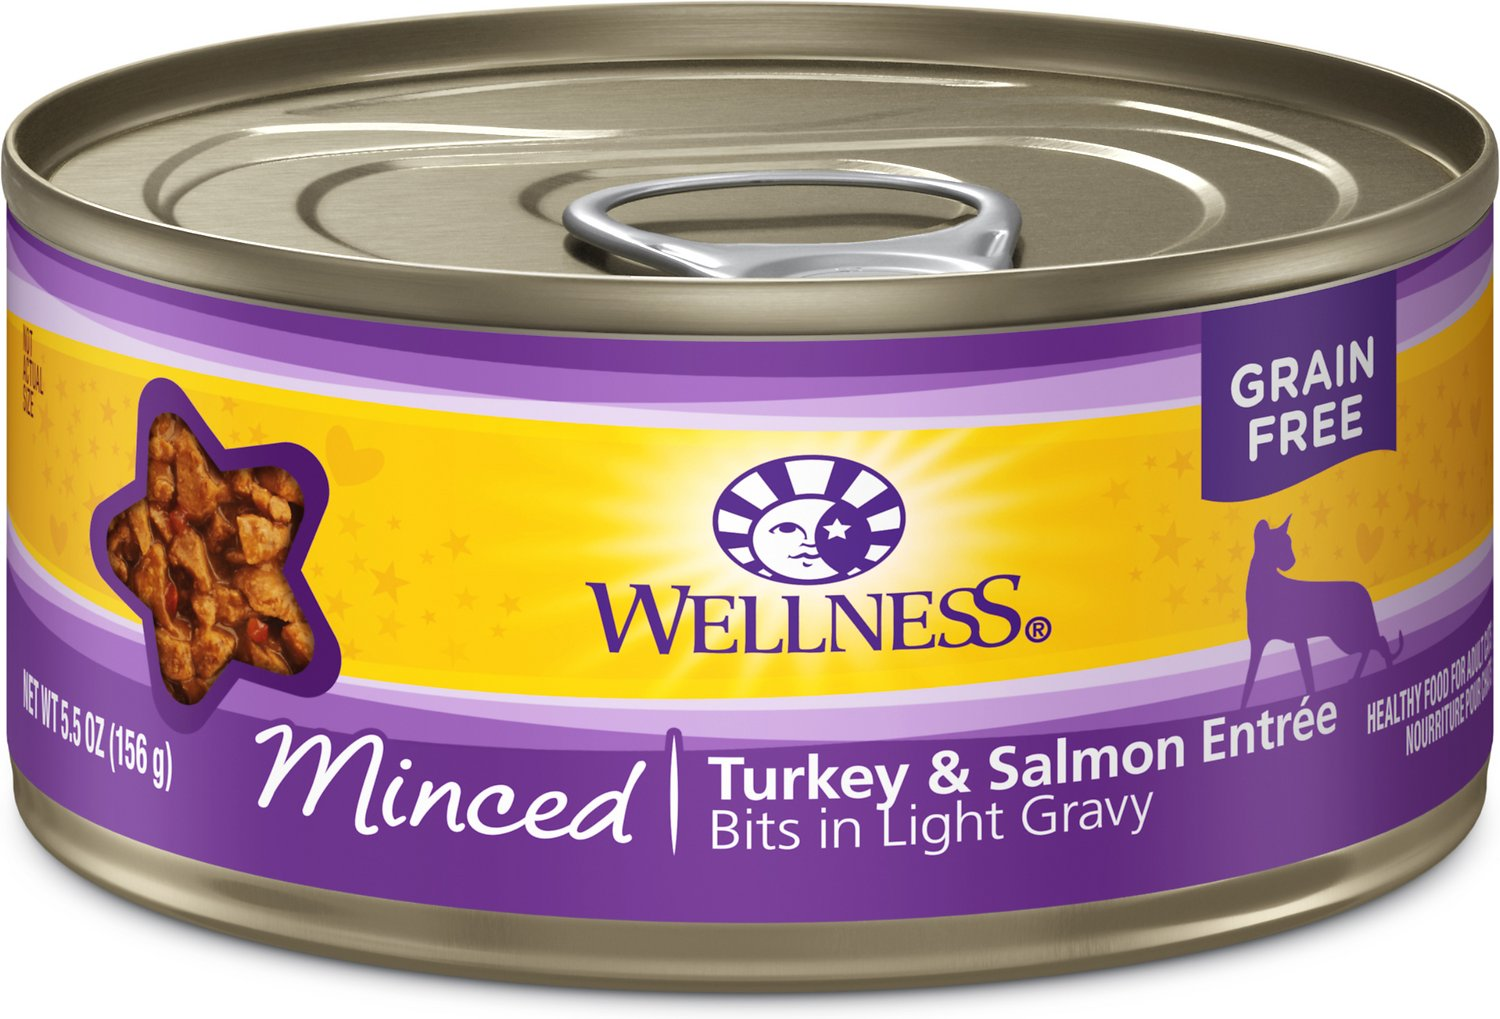 Wellness Minced Turkey & Salmon Entree Grain-Free Canned Cat Food, 5.5-oz